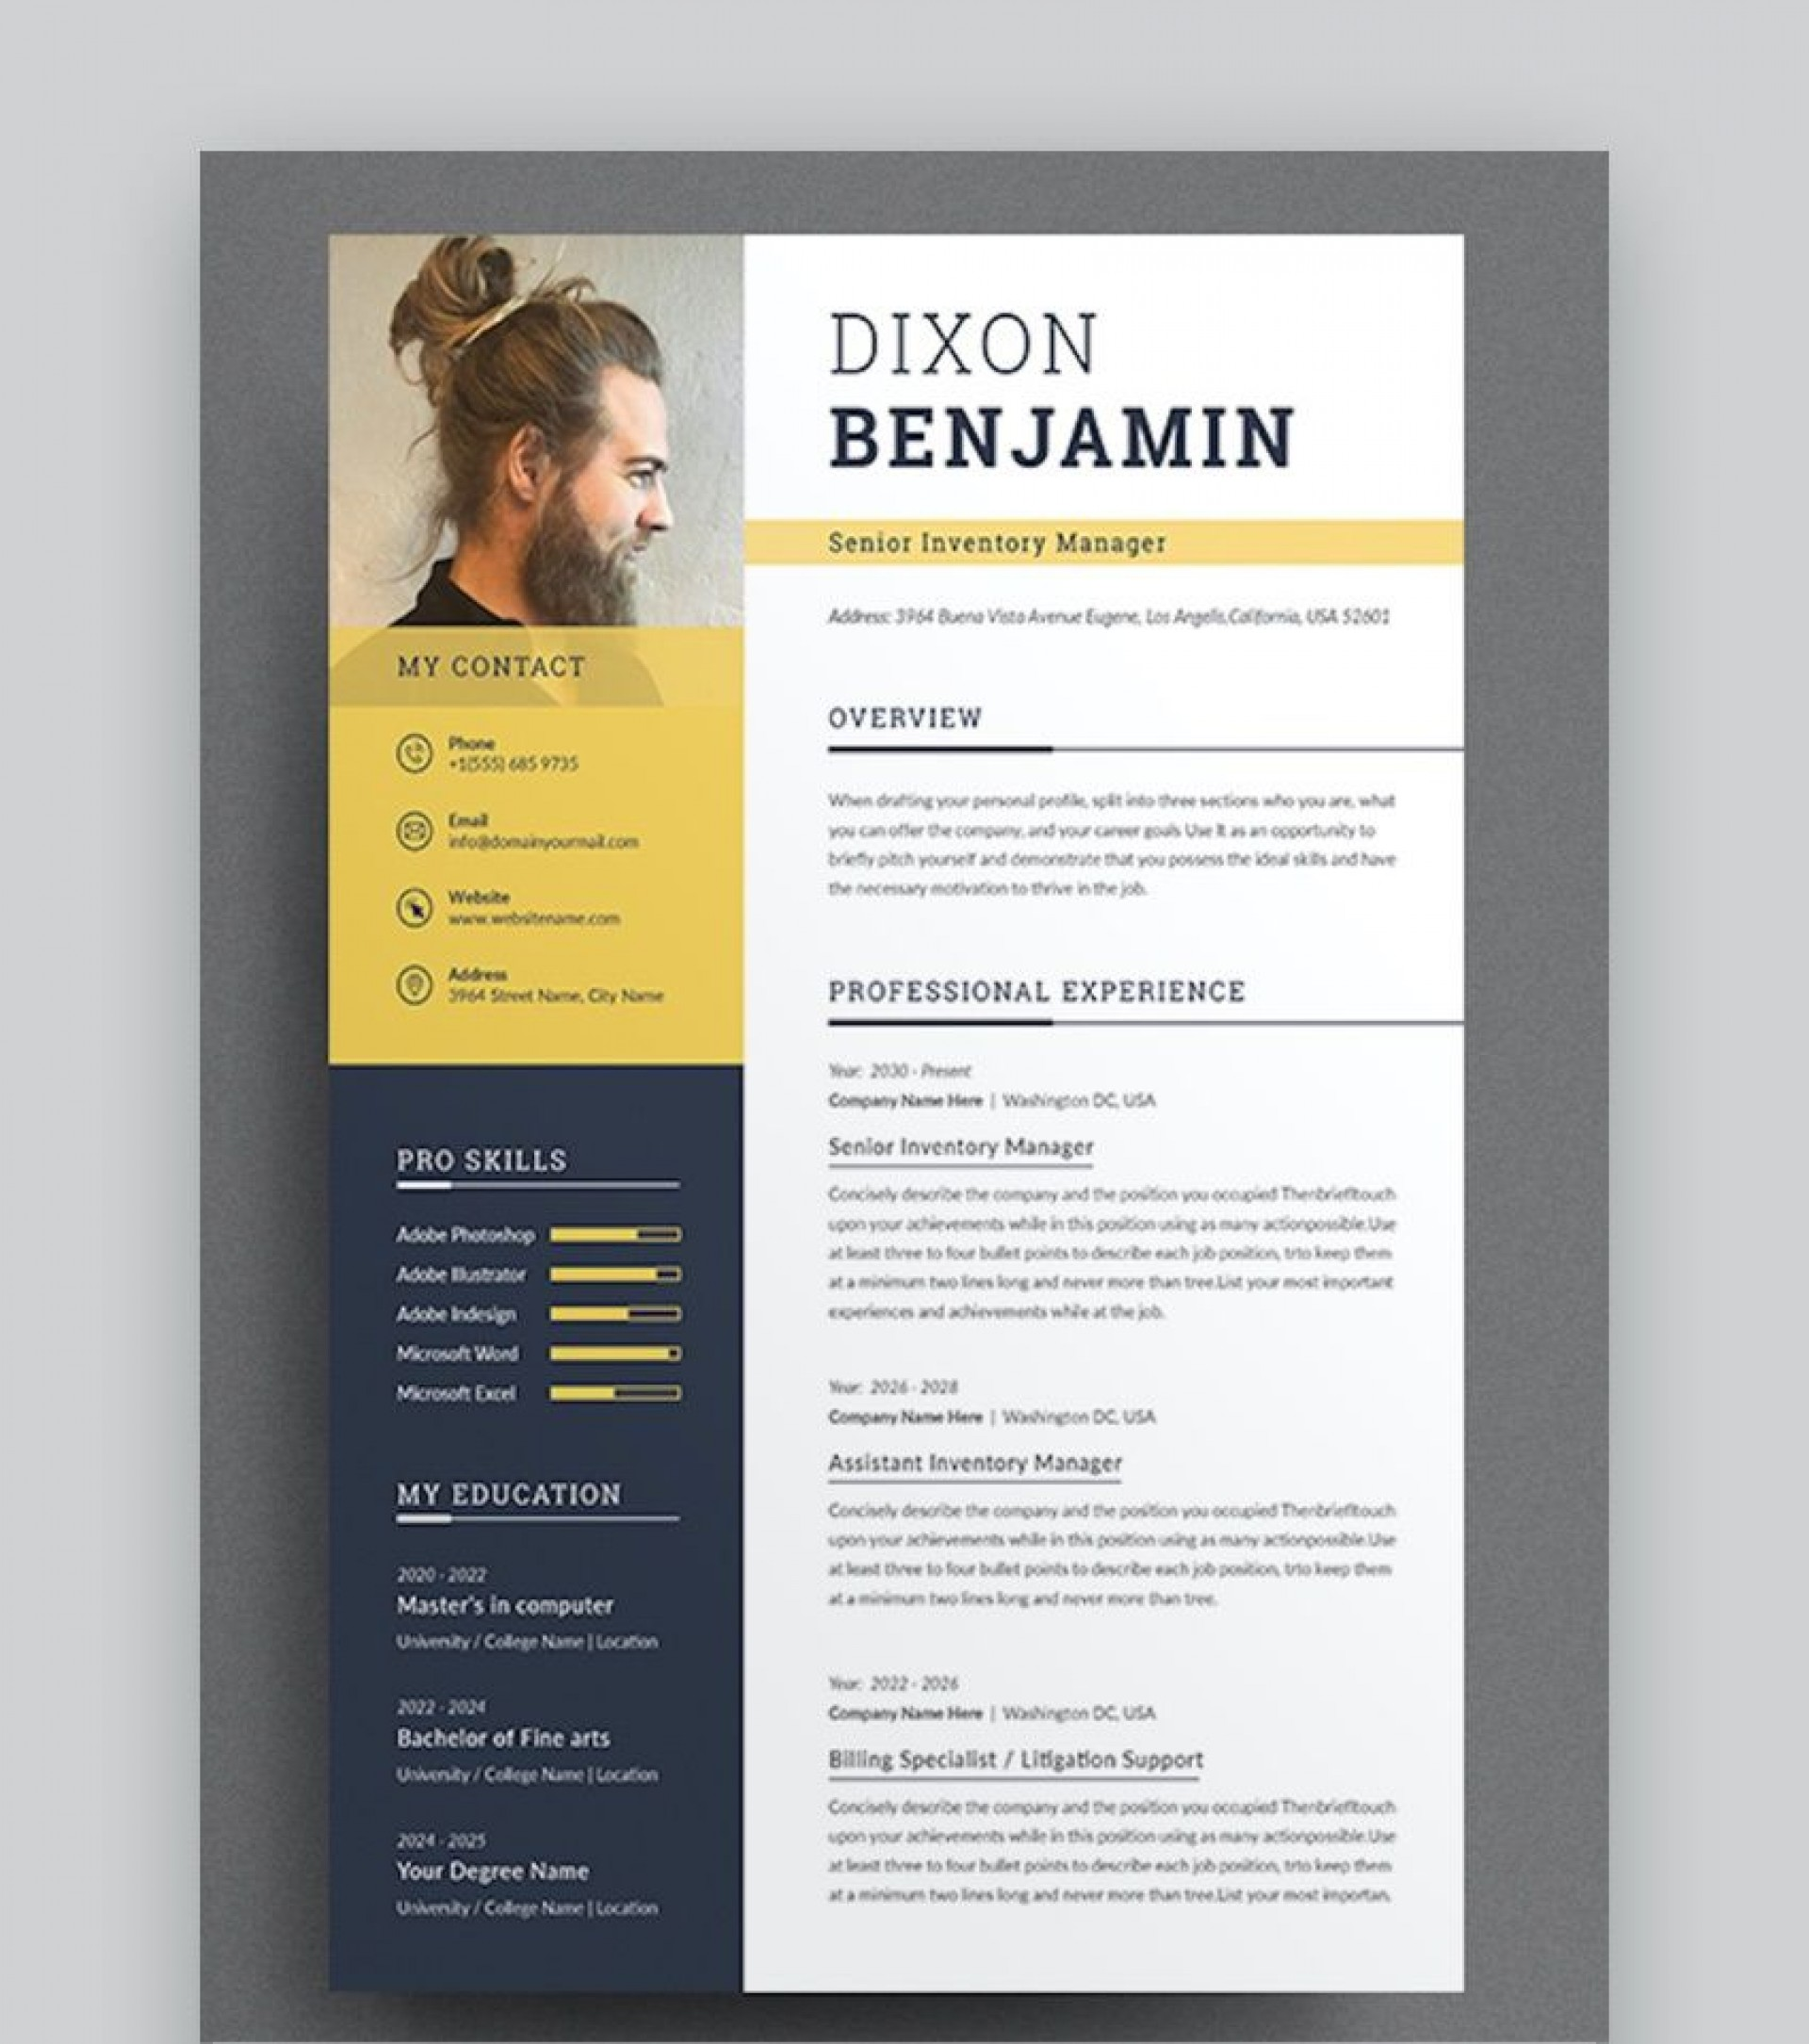 007 Fascinating Make A Resume Template In Word High Resolution  How To 2010 20071920